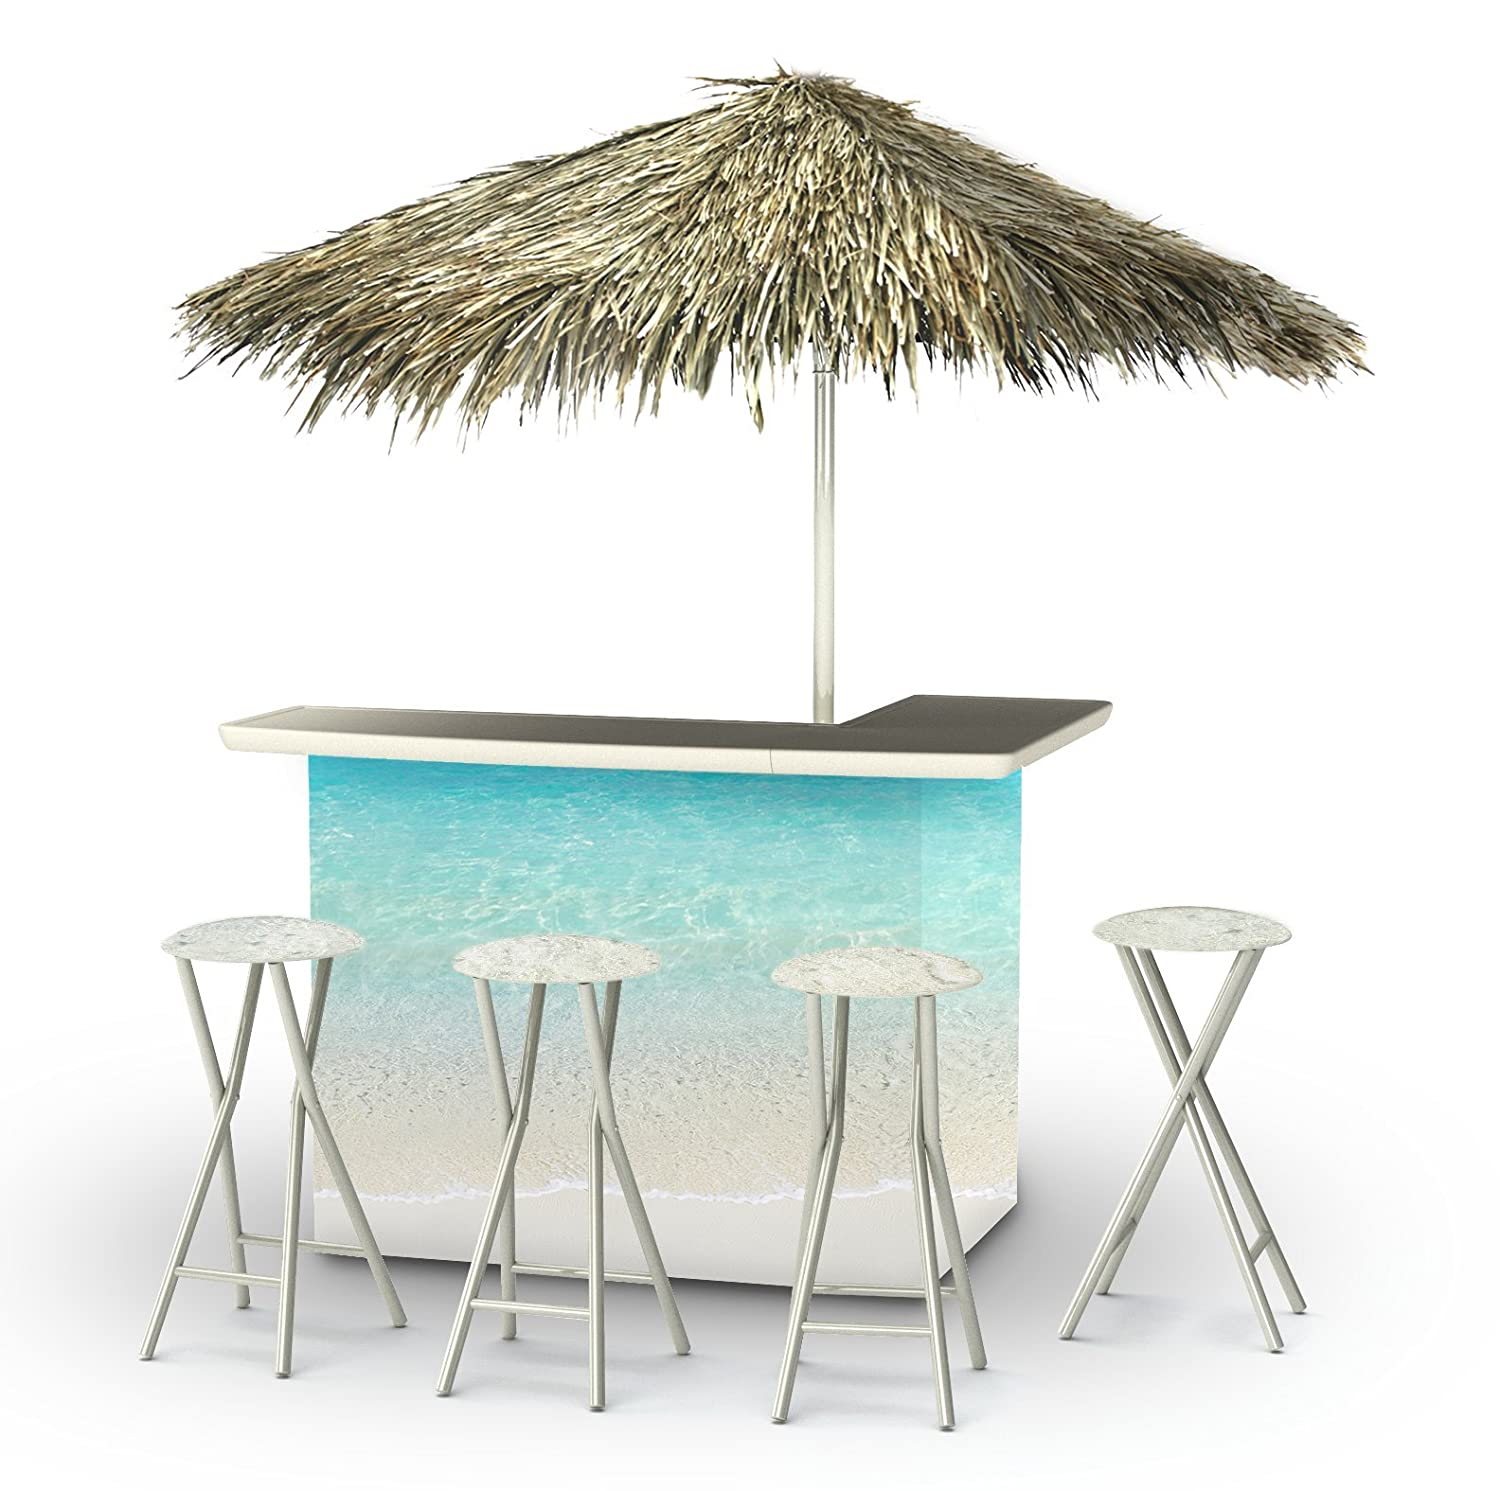 Best of Times 2003W2305P Sand BAR-PALAPA, One Size, Blue